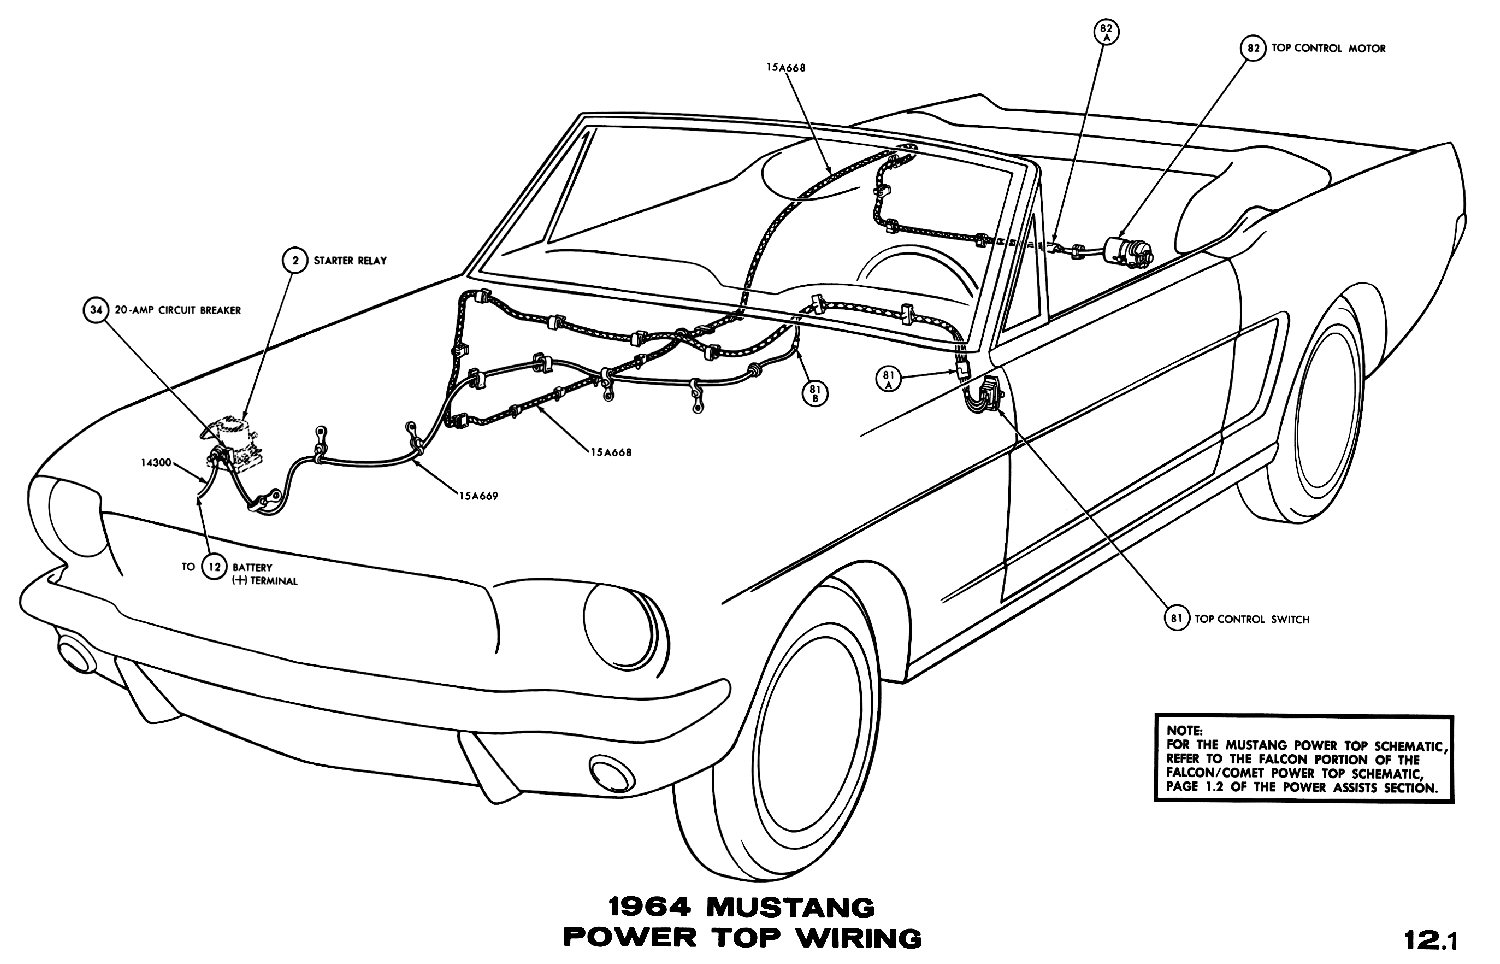 1964 mustang wiring diagrams average joe restoration 1964 mustang power top pictorial or schematic